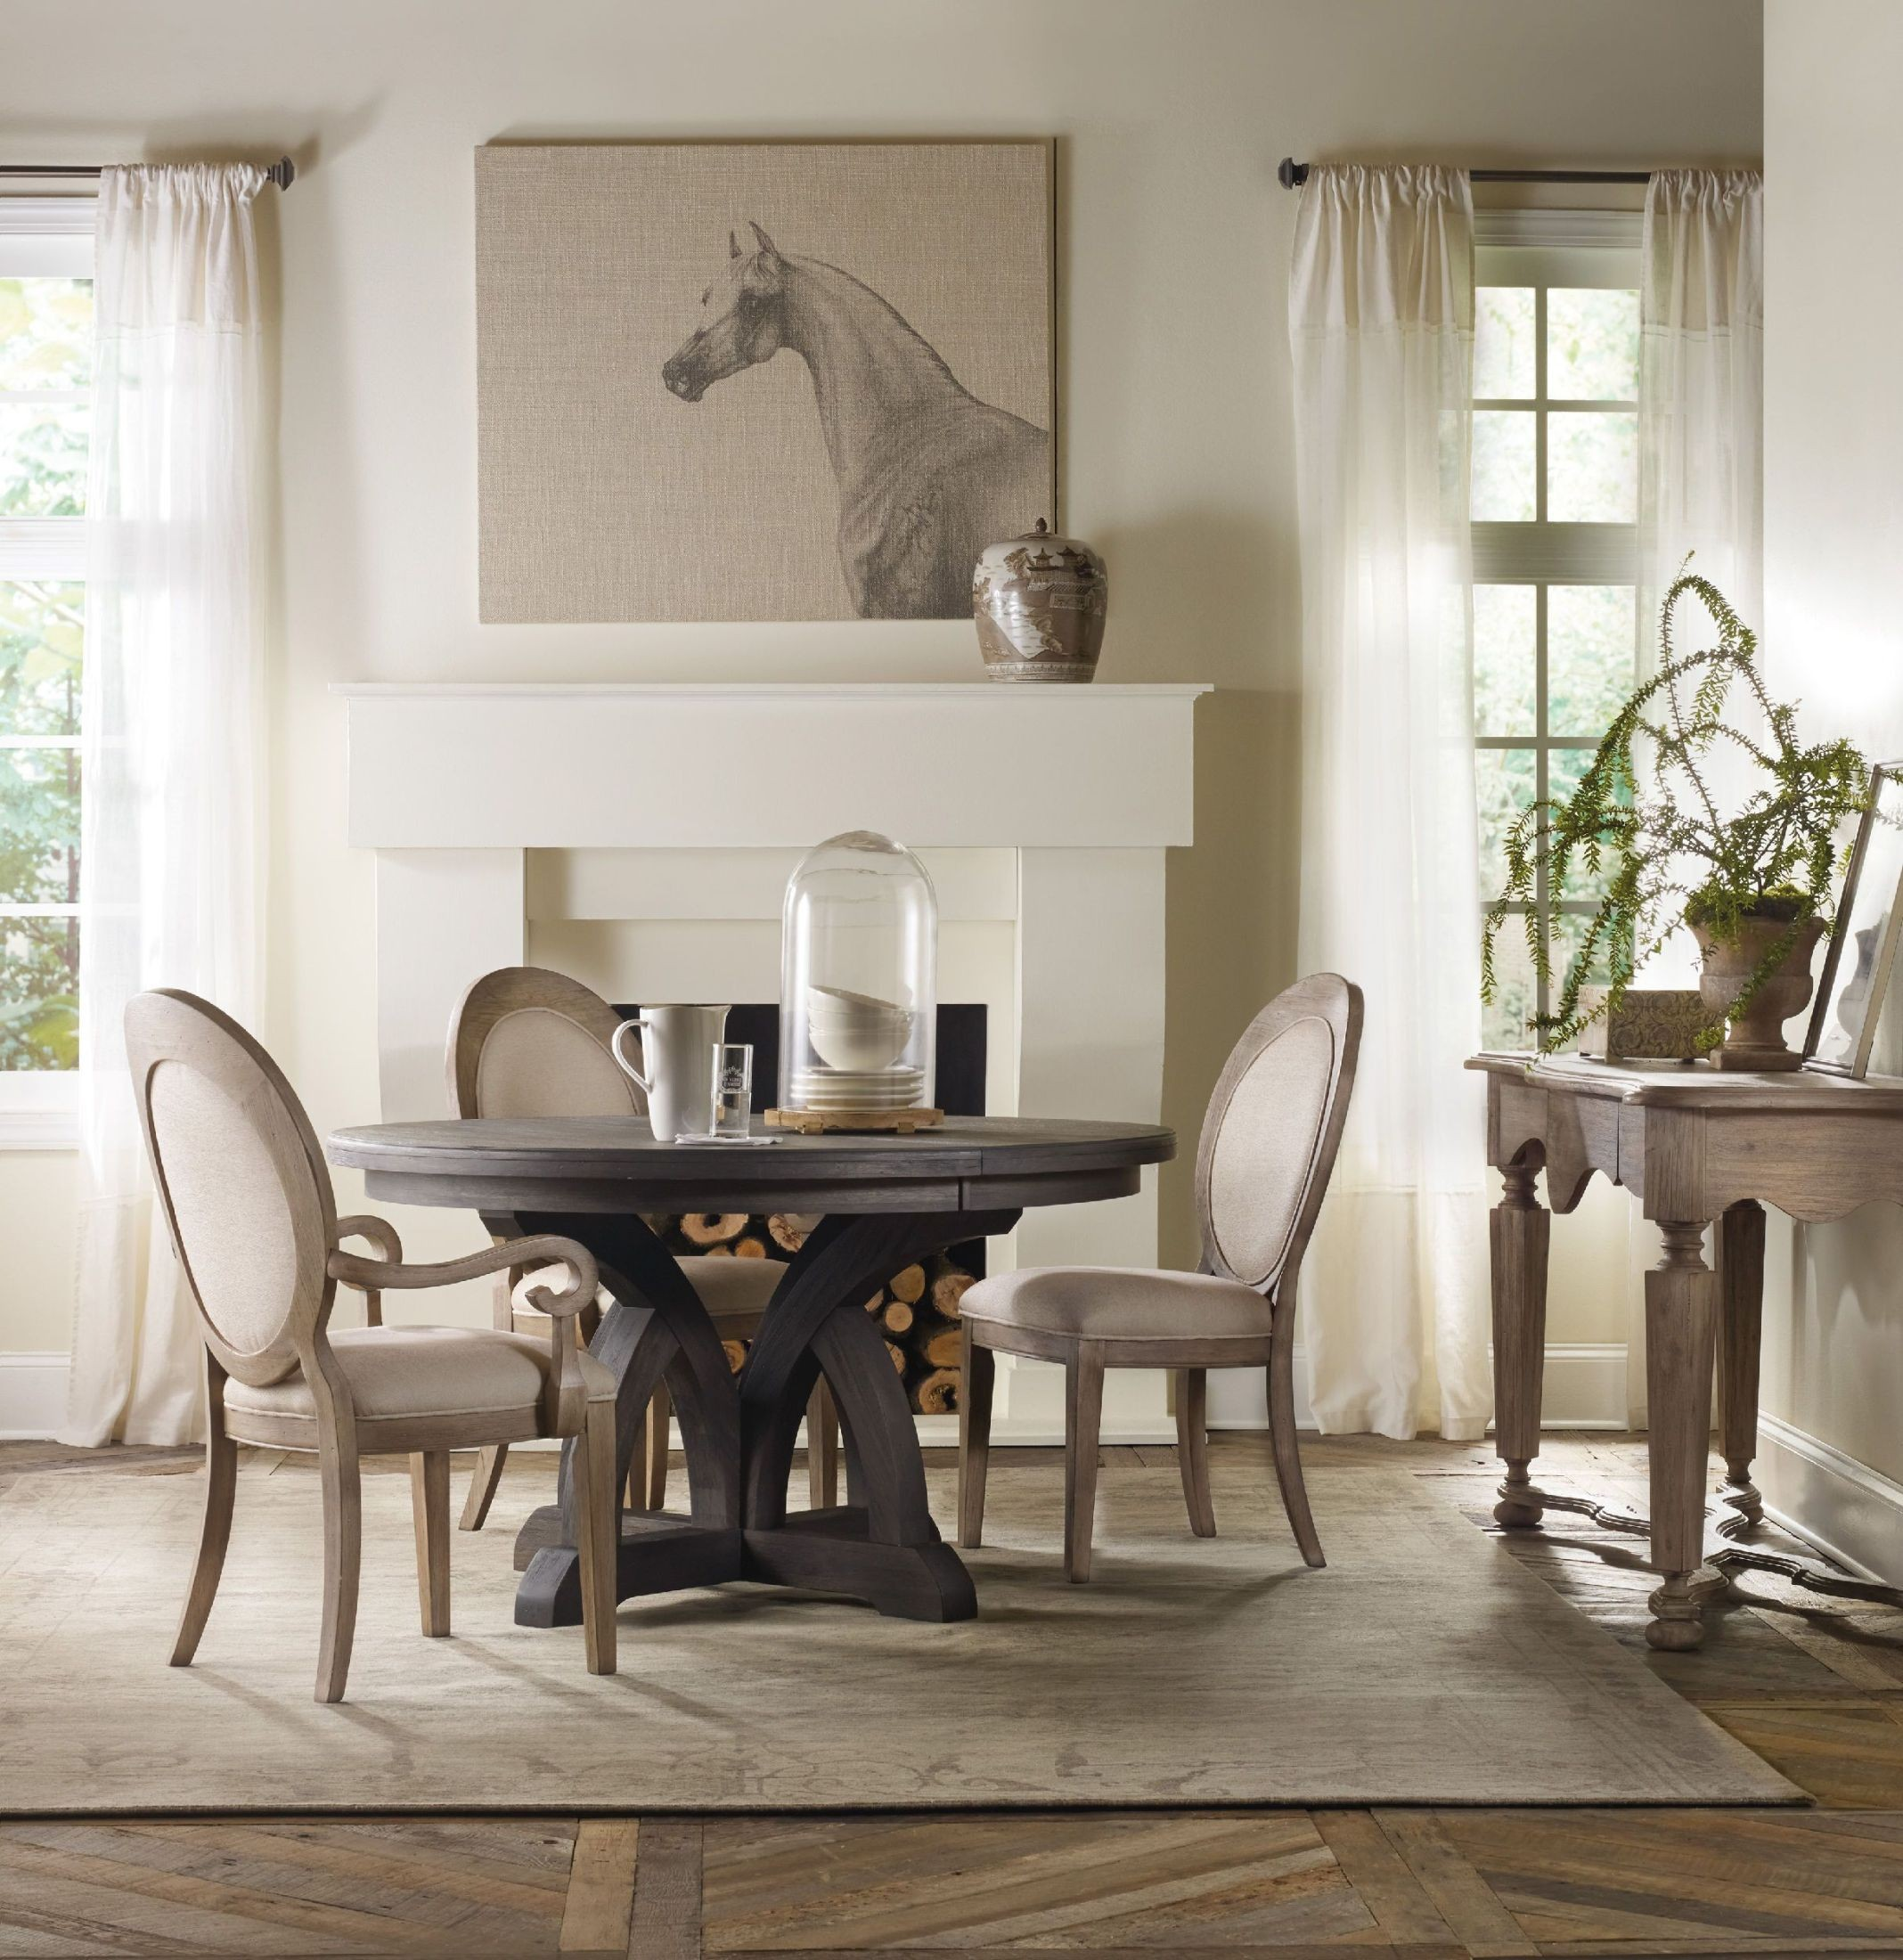 Corsica light wood round extendable dining room set from for Light wood dining room sets